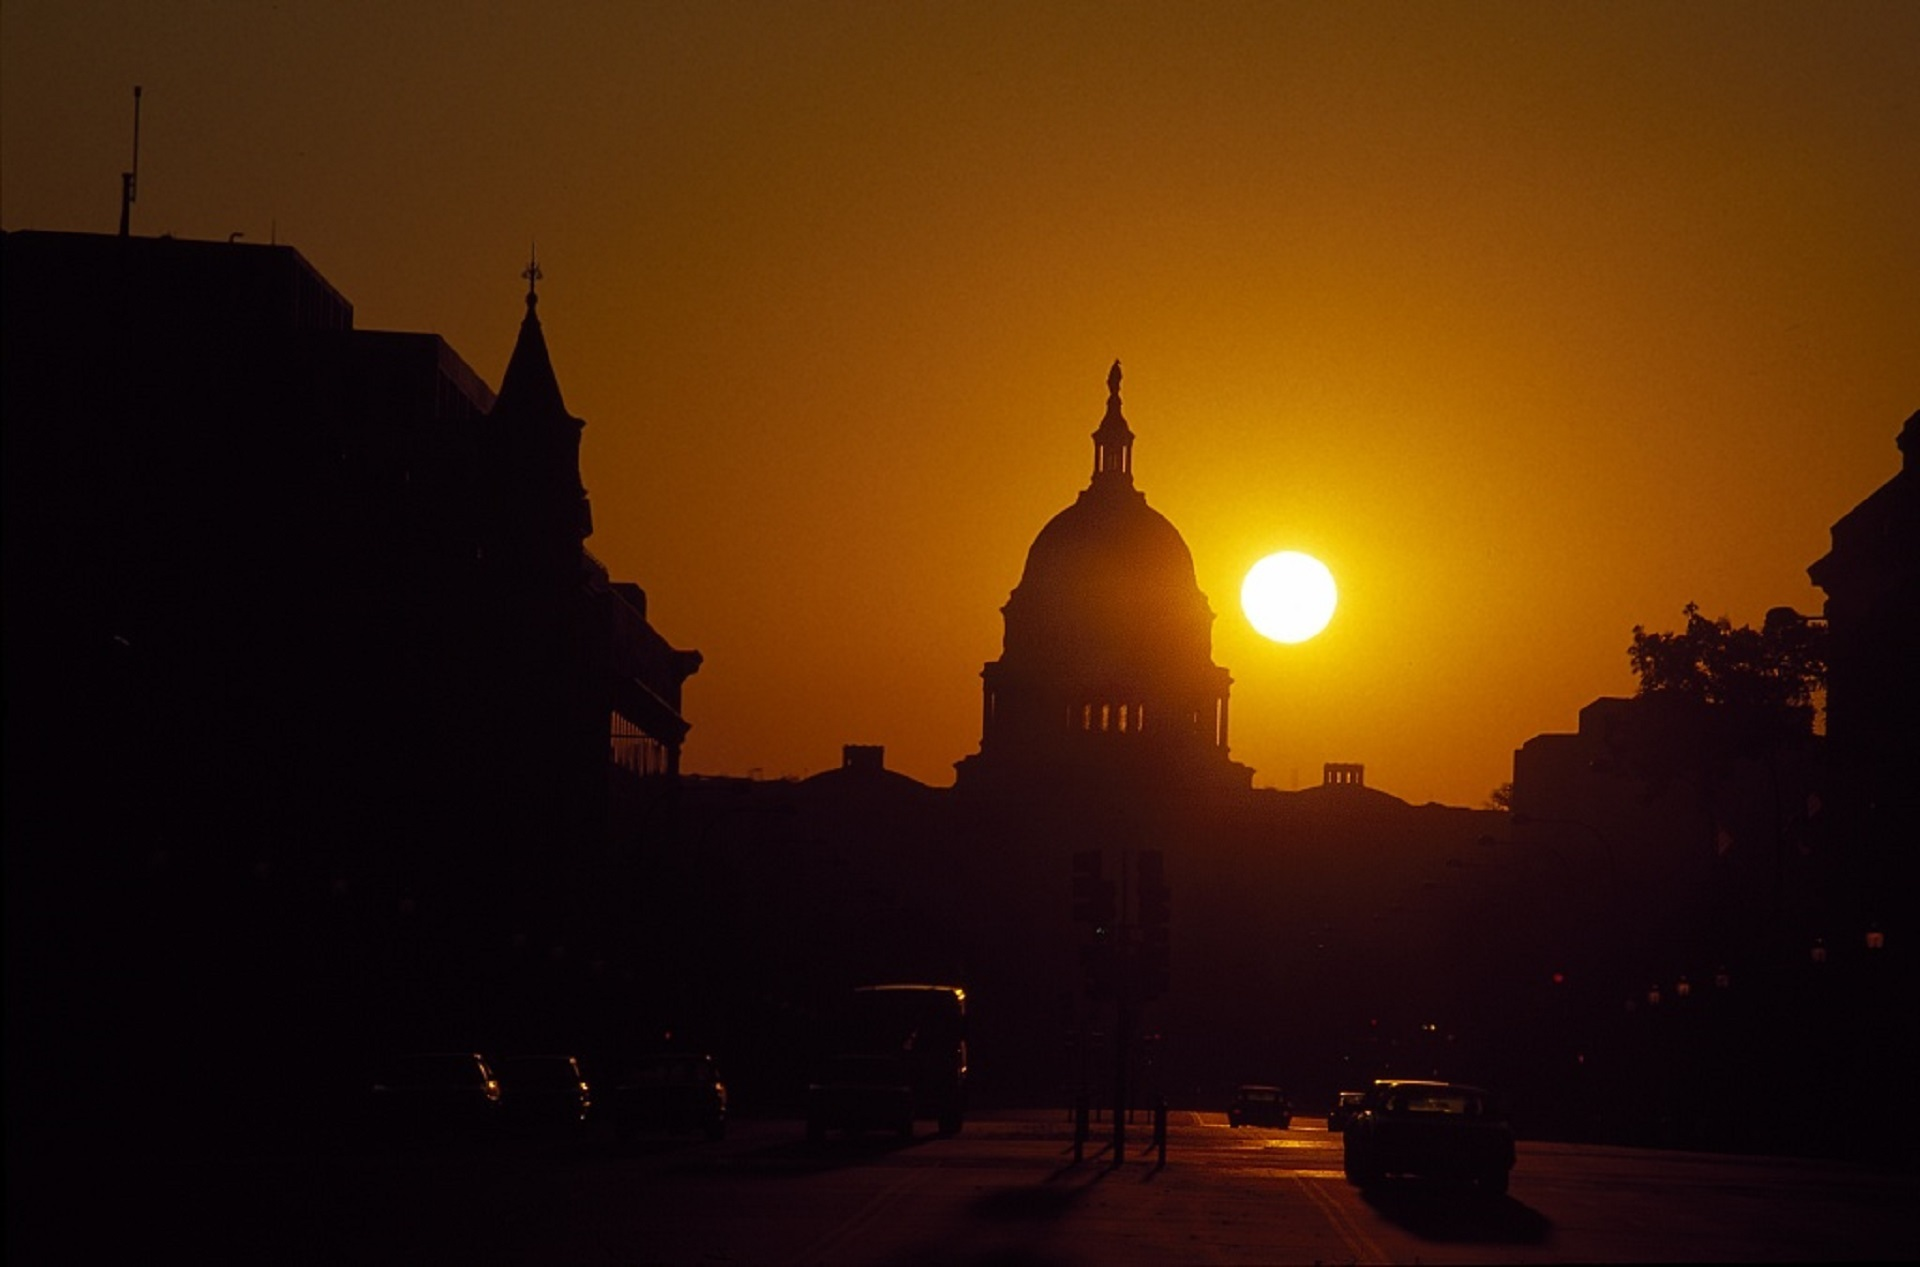 Sunrise in Washington, District of Columbia